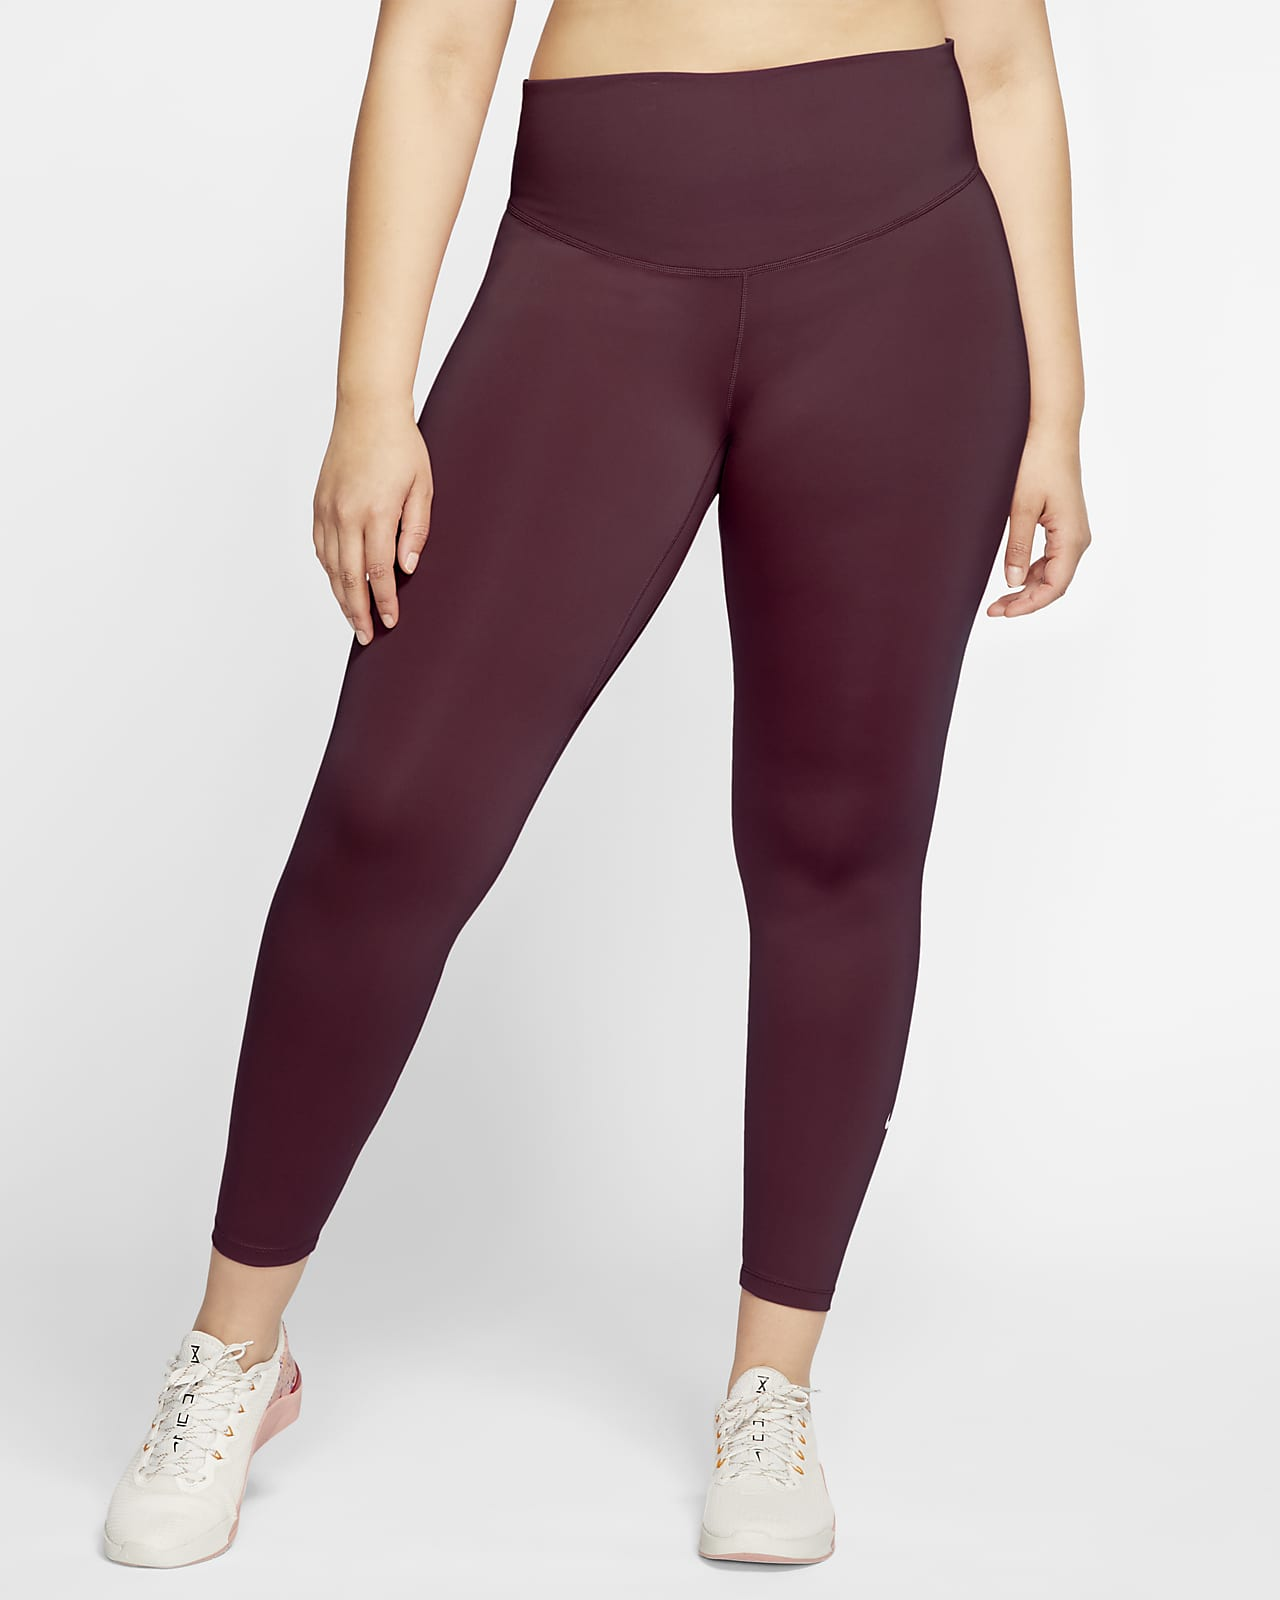 Nike One Women's Tights (Plus Size)